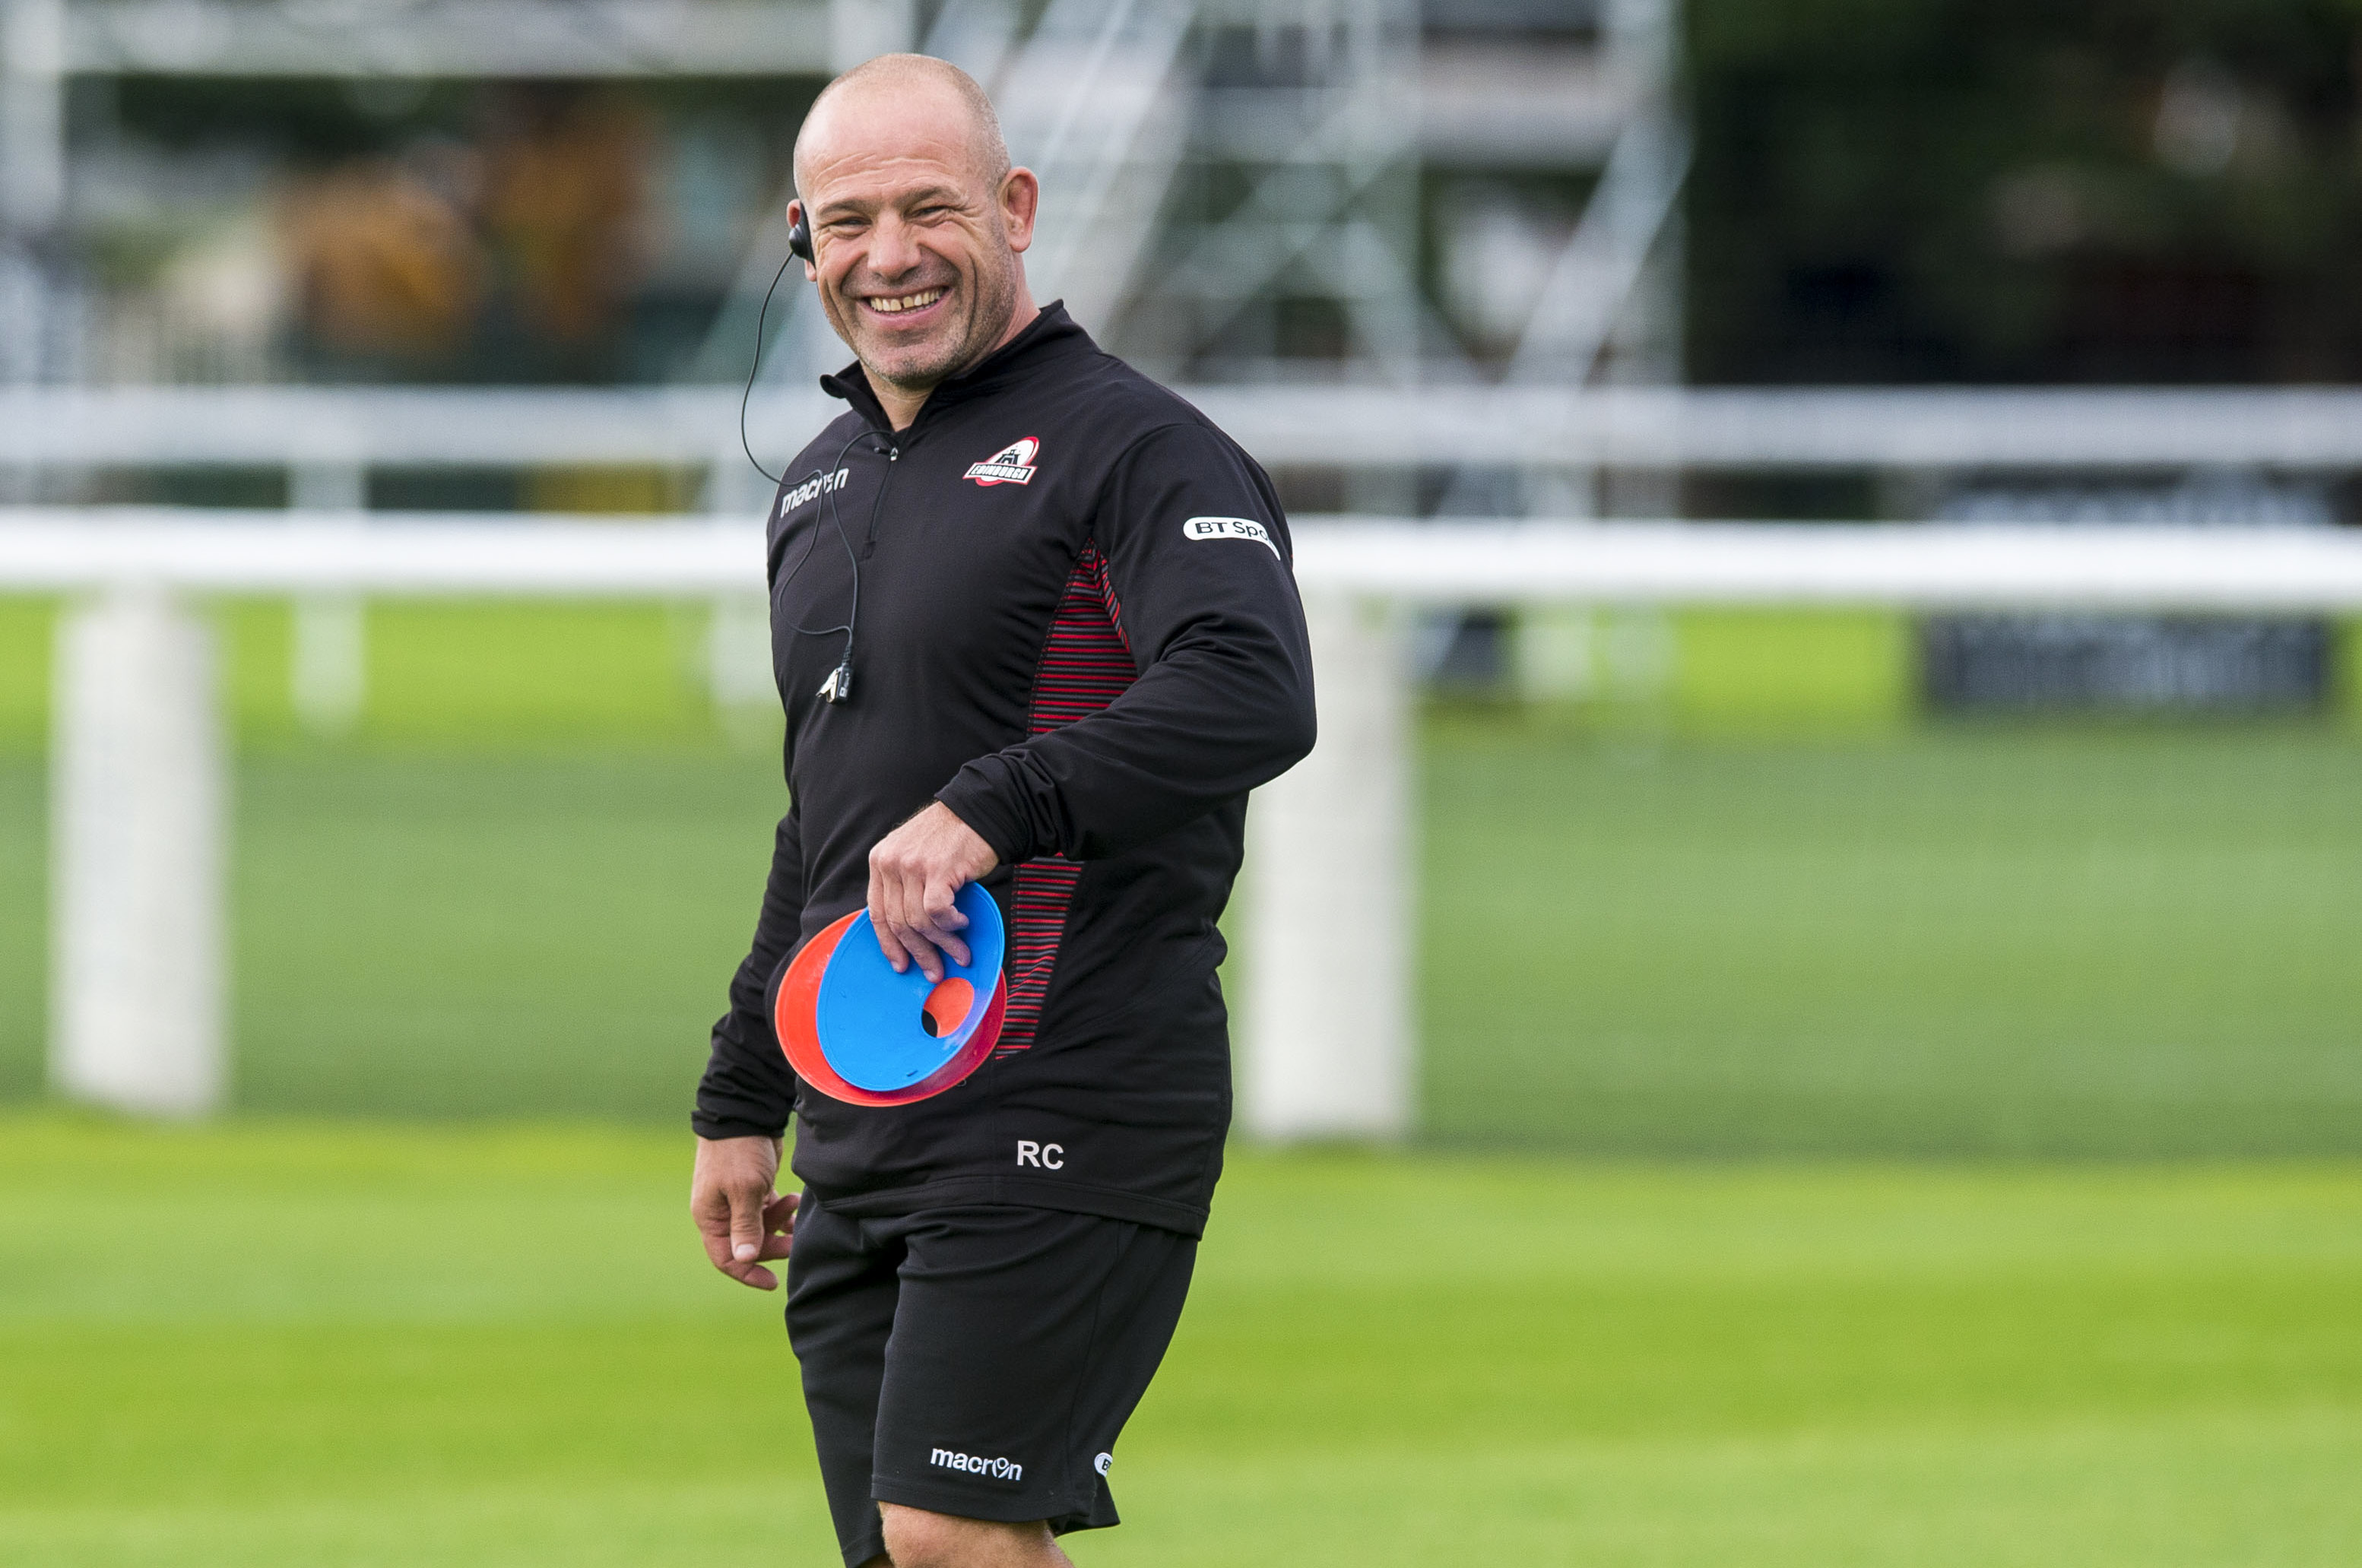 Edinburgh may be over-reliant of the effect of new head coach Richard Cockerill to turn their fortunes around.